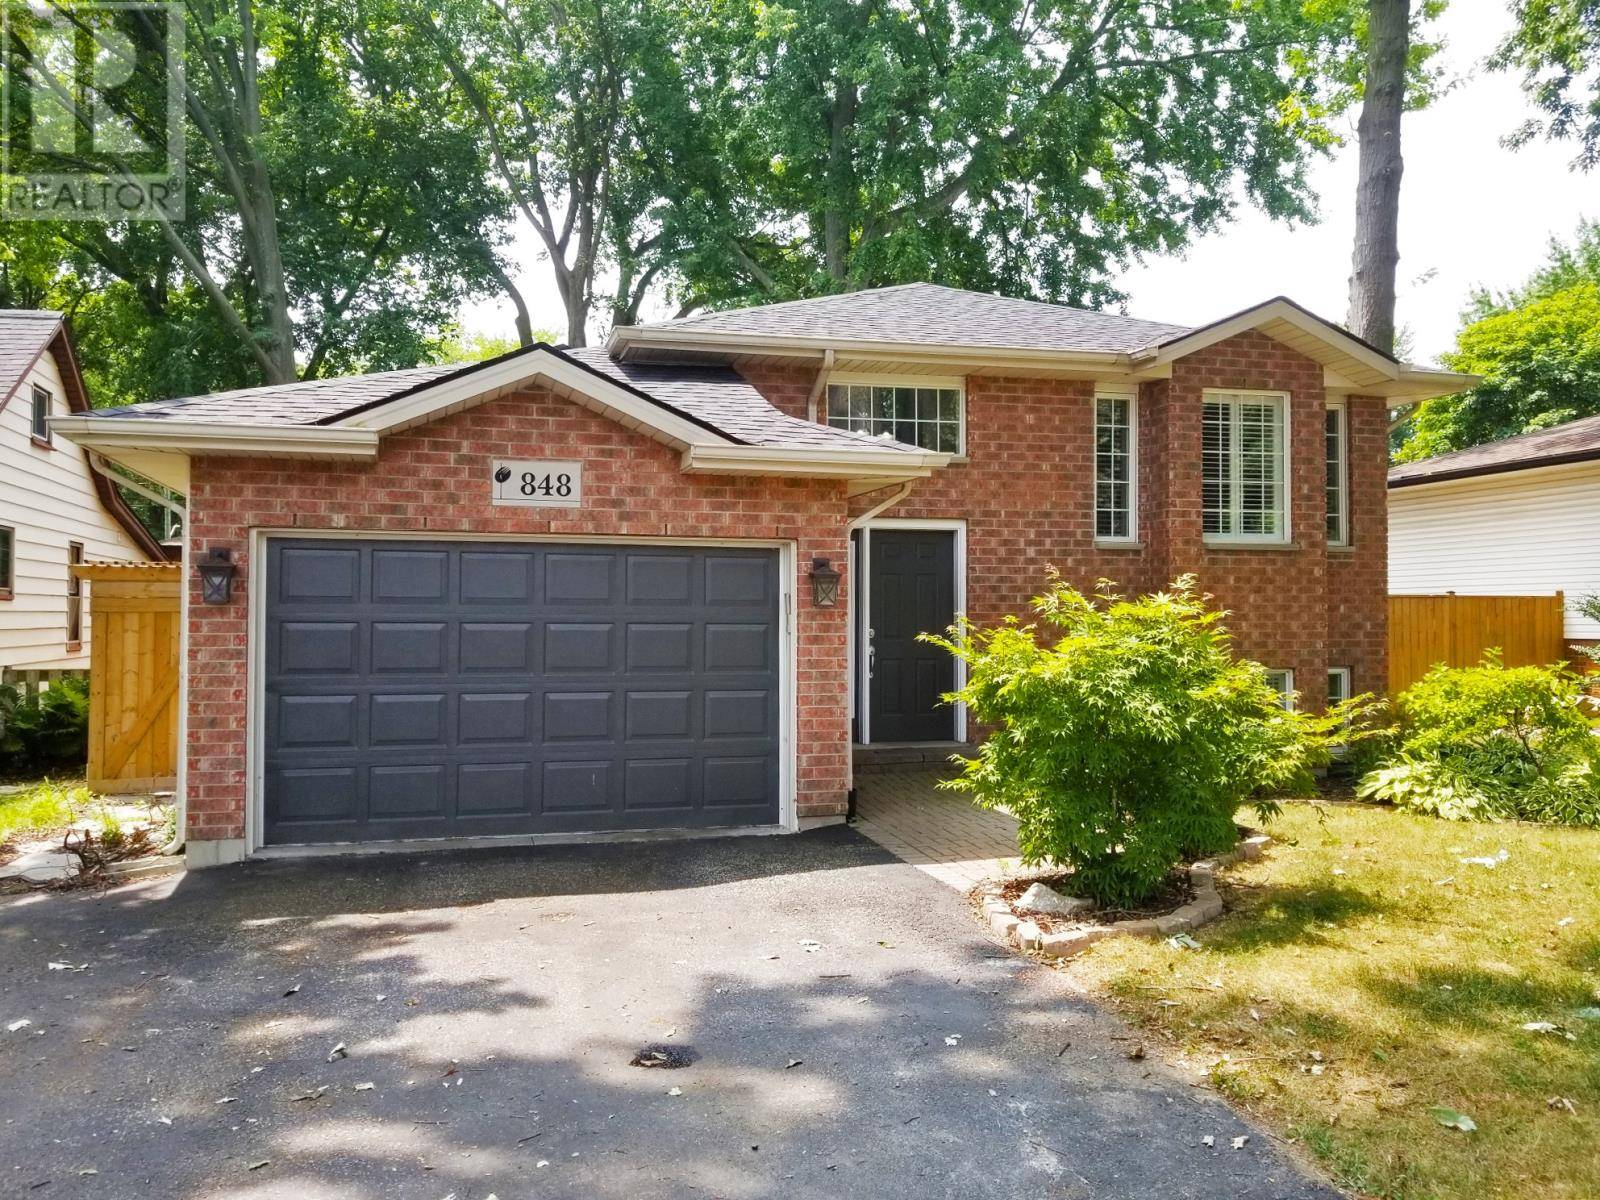 House for sale at 848 Laurier Dr Lasalle Ontario - MLS: 19021480